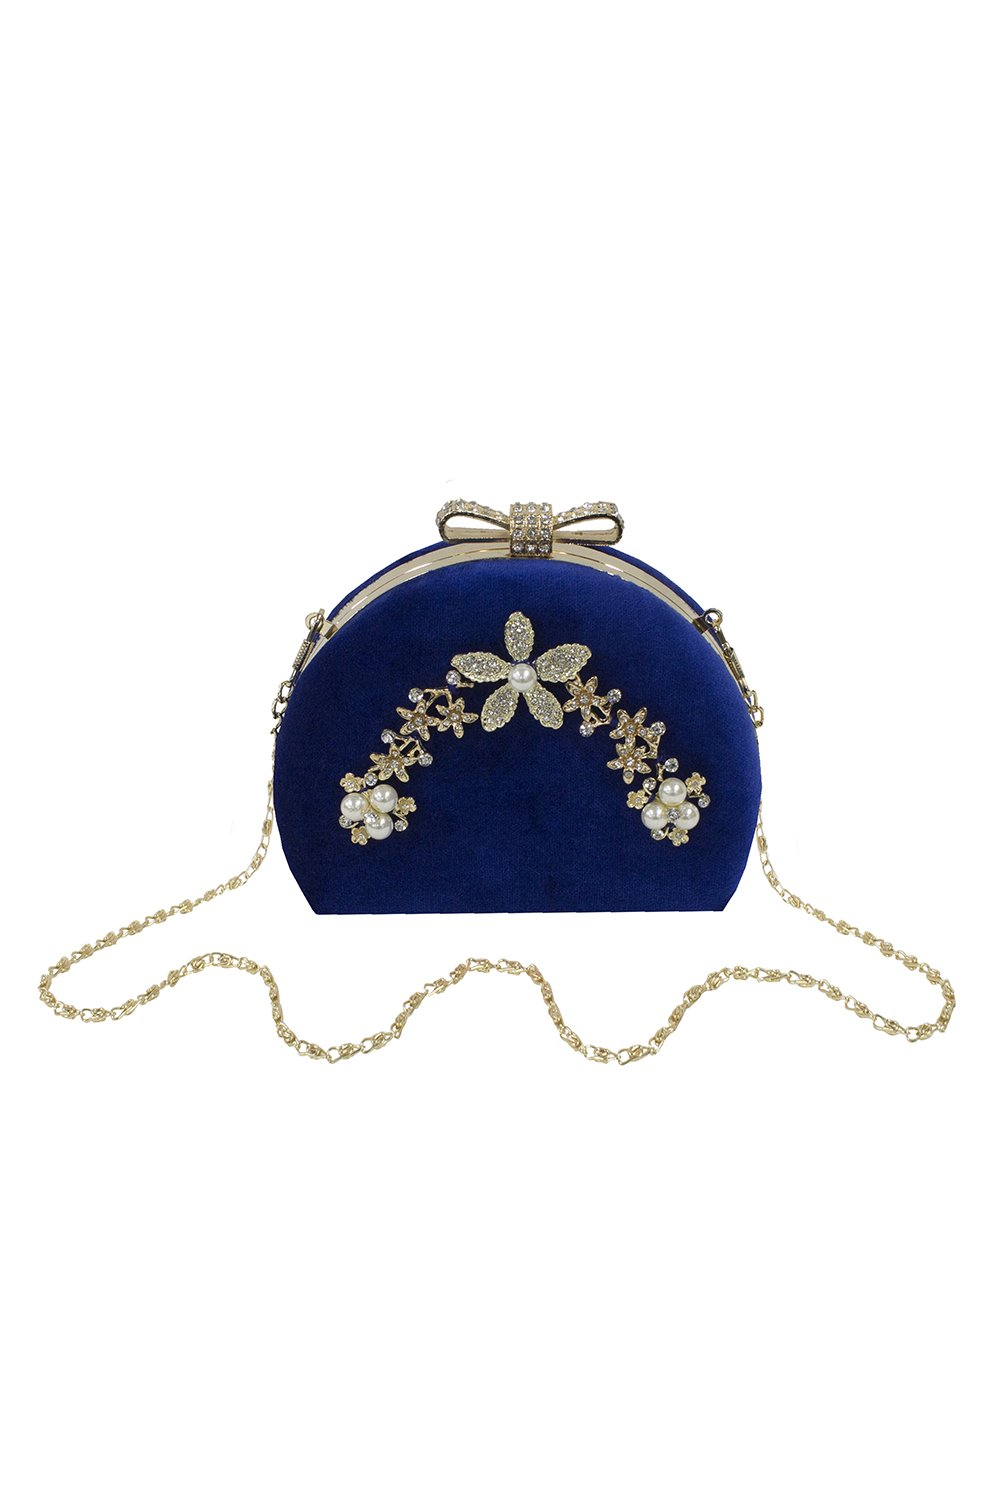 Royal Blue Satin Flowers and Pearls Evening Clutch Bag